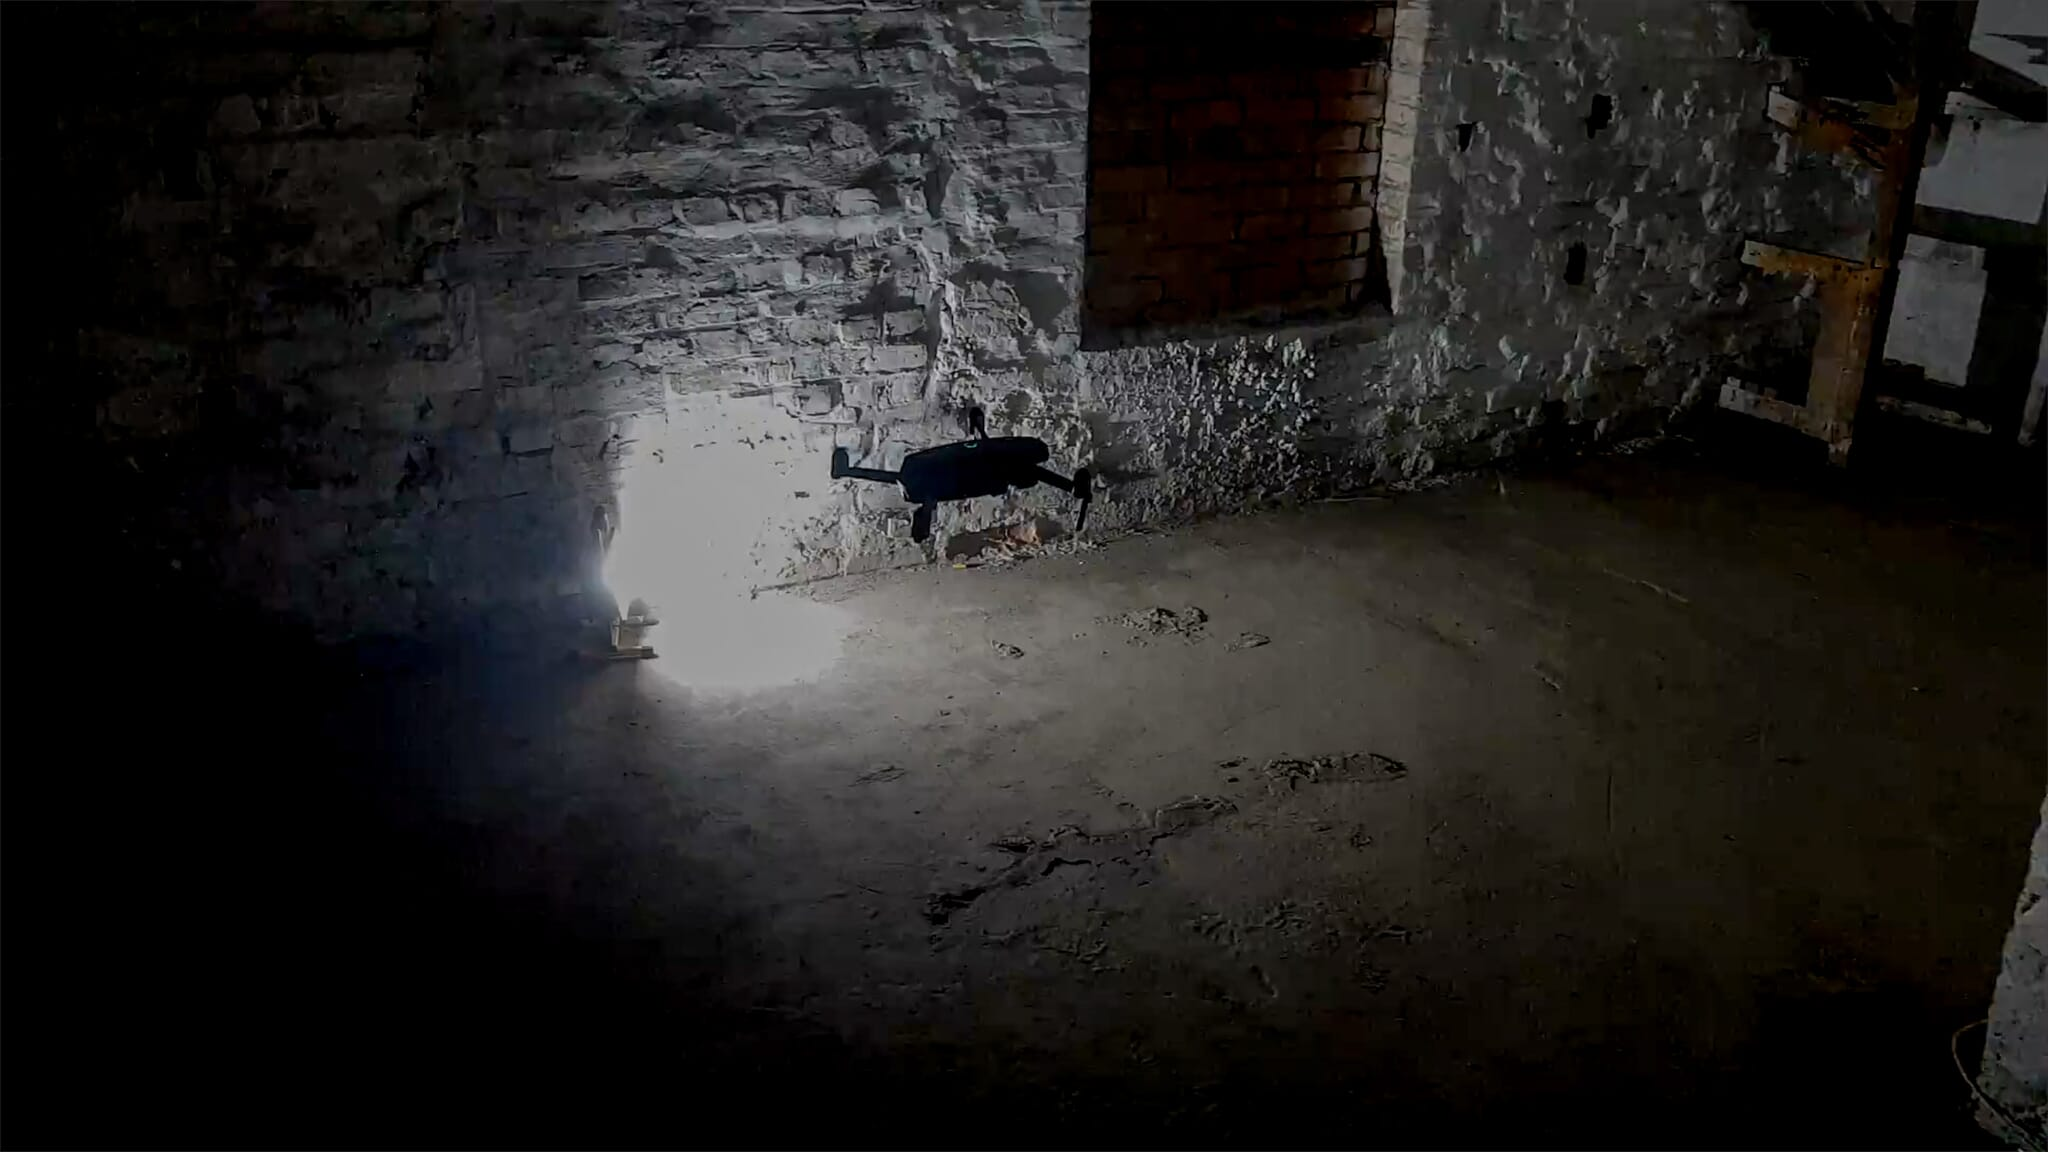 Drone filming in dark tunnels in The Granville Hotel